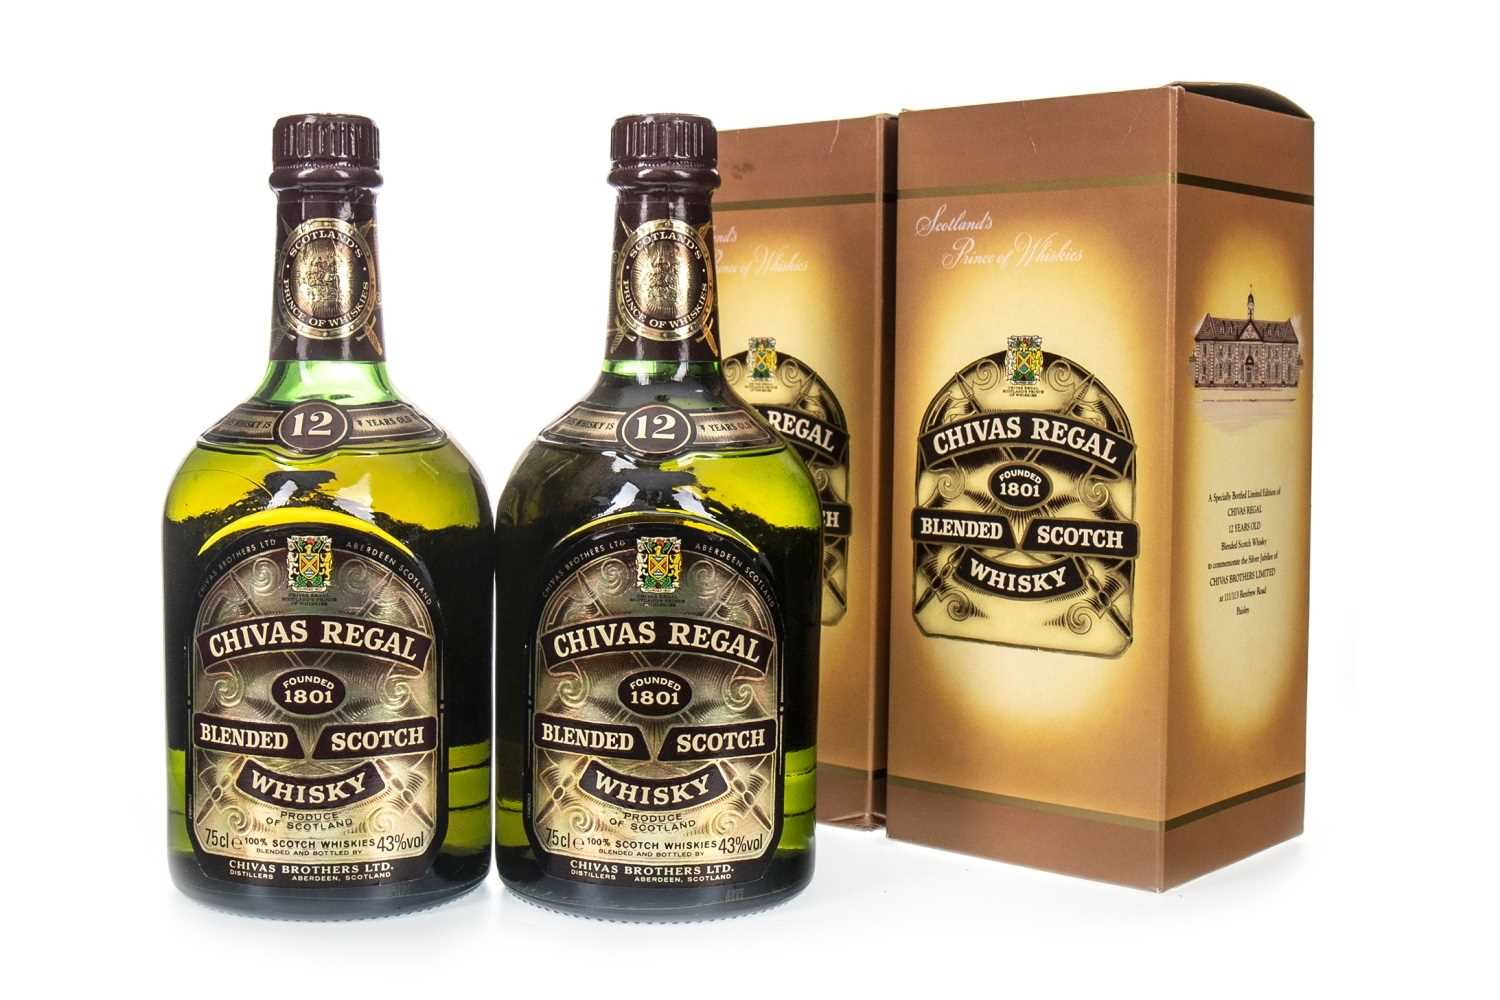 Lot 417-TWO BOTTLES OF CHIVAS REGAL SILVER JUBILEE AGED 12 YEARS